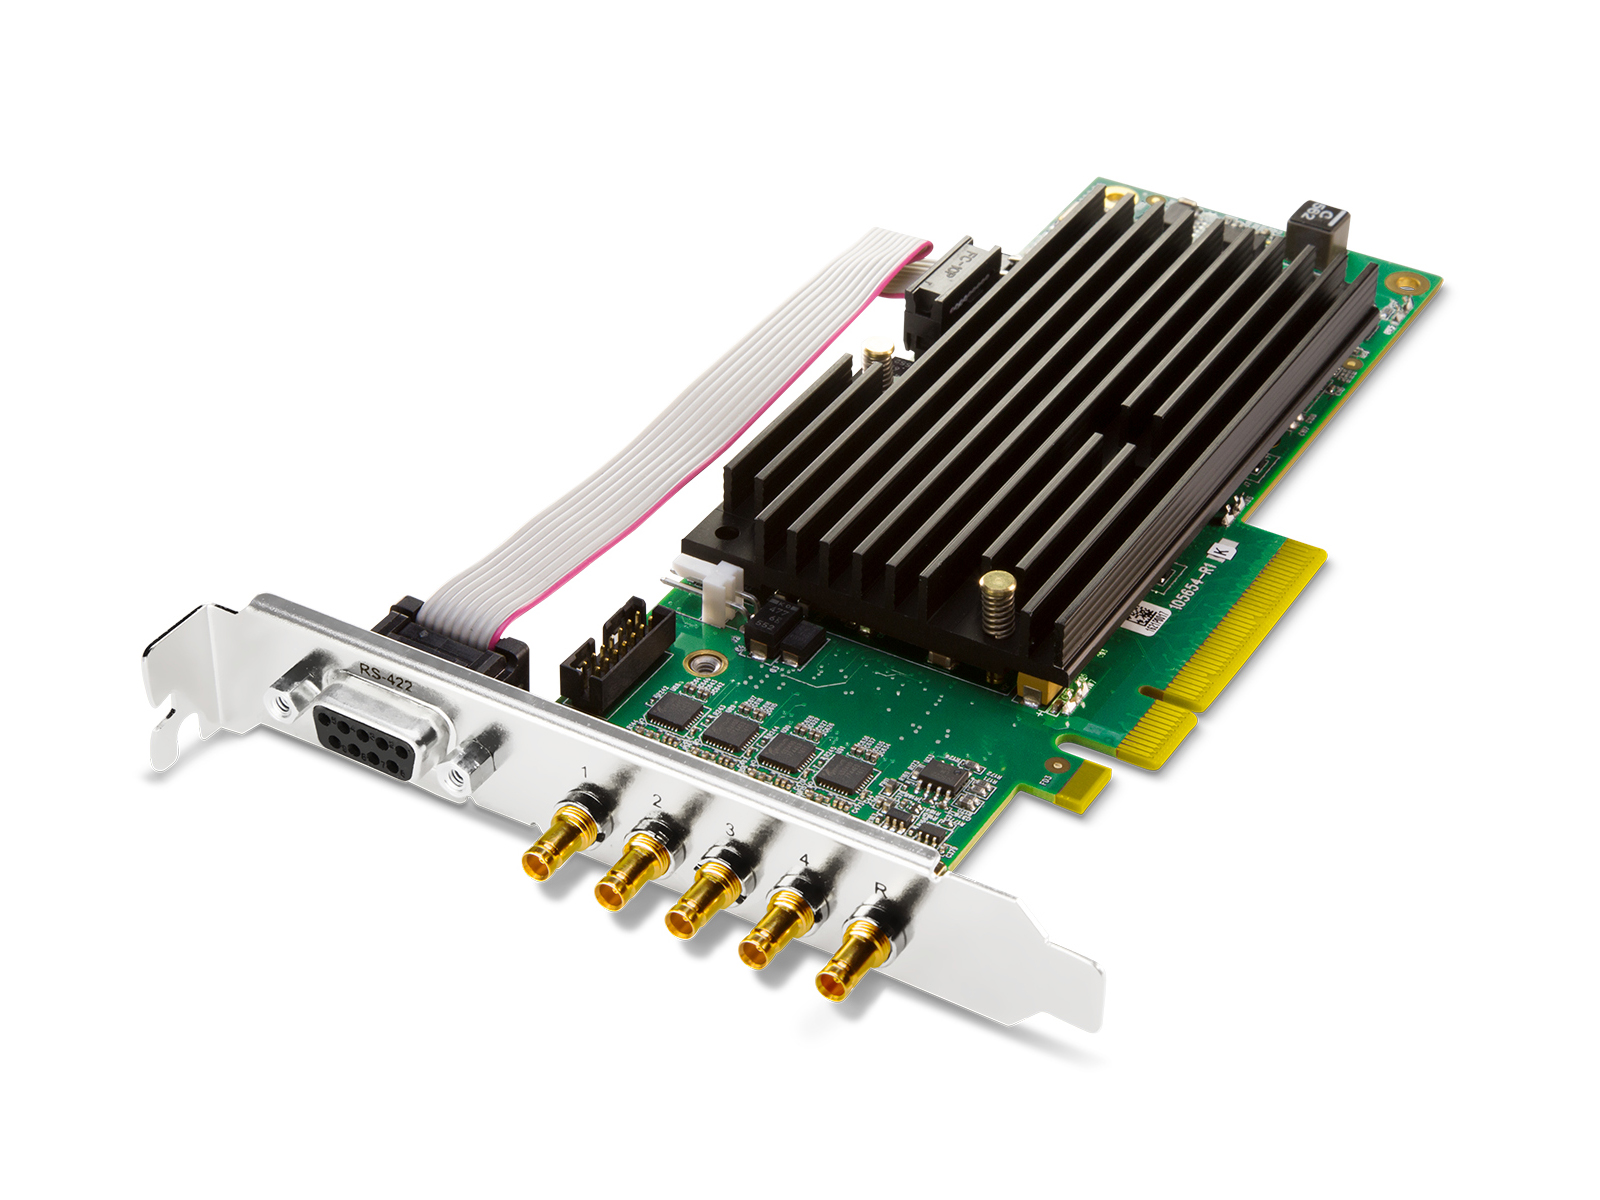 CRV44-T-NCF Corvid 44 with standard profile PCIe bracket and passive heat sink/no cables by AJA